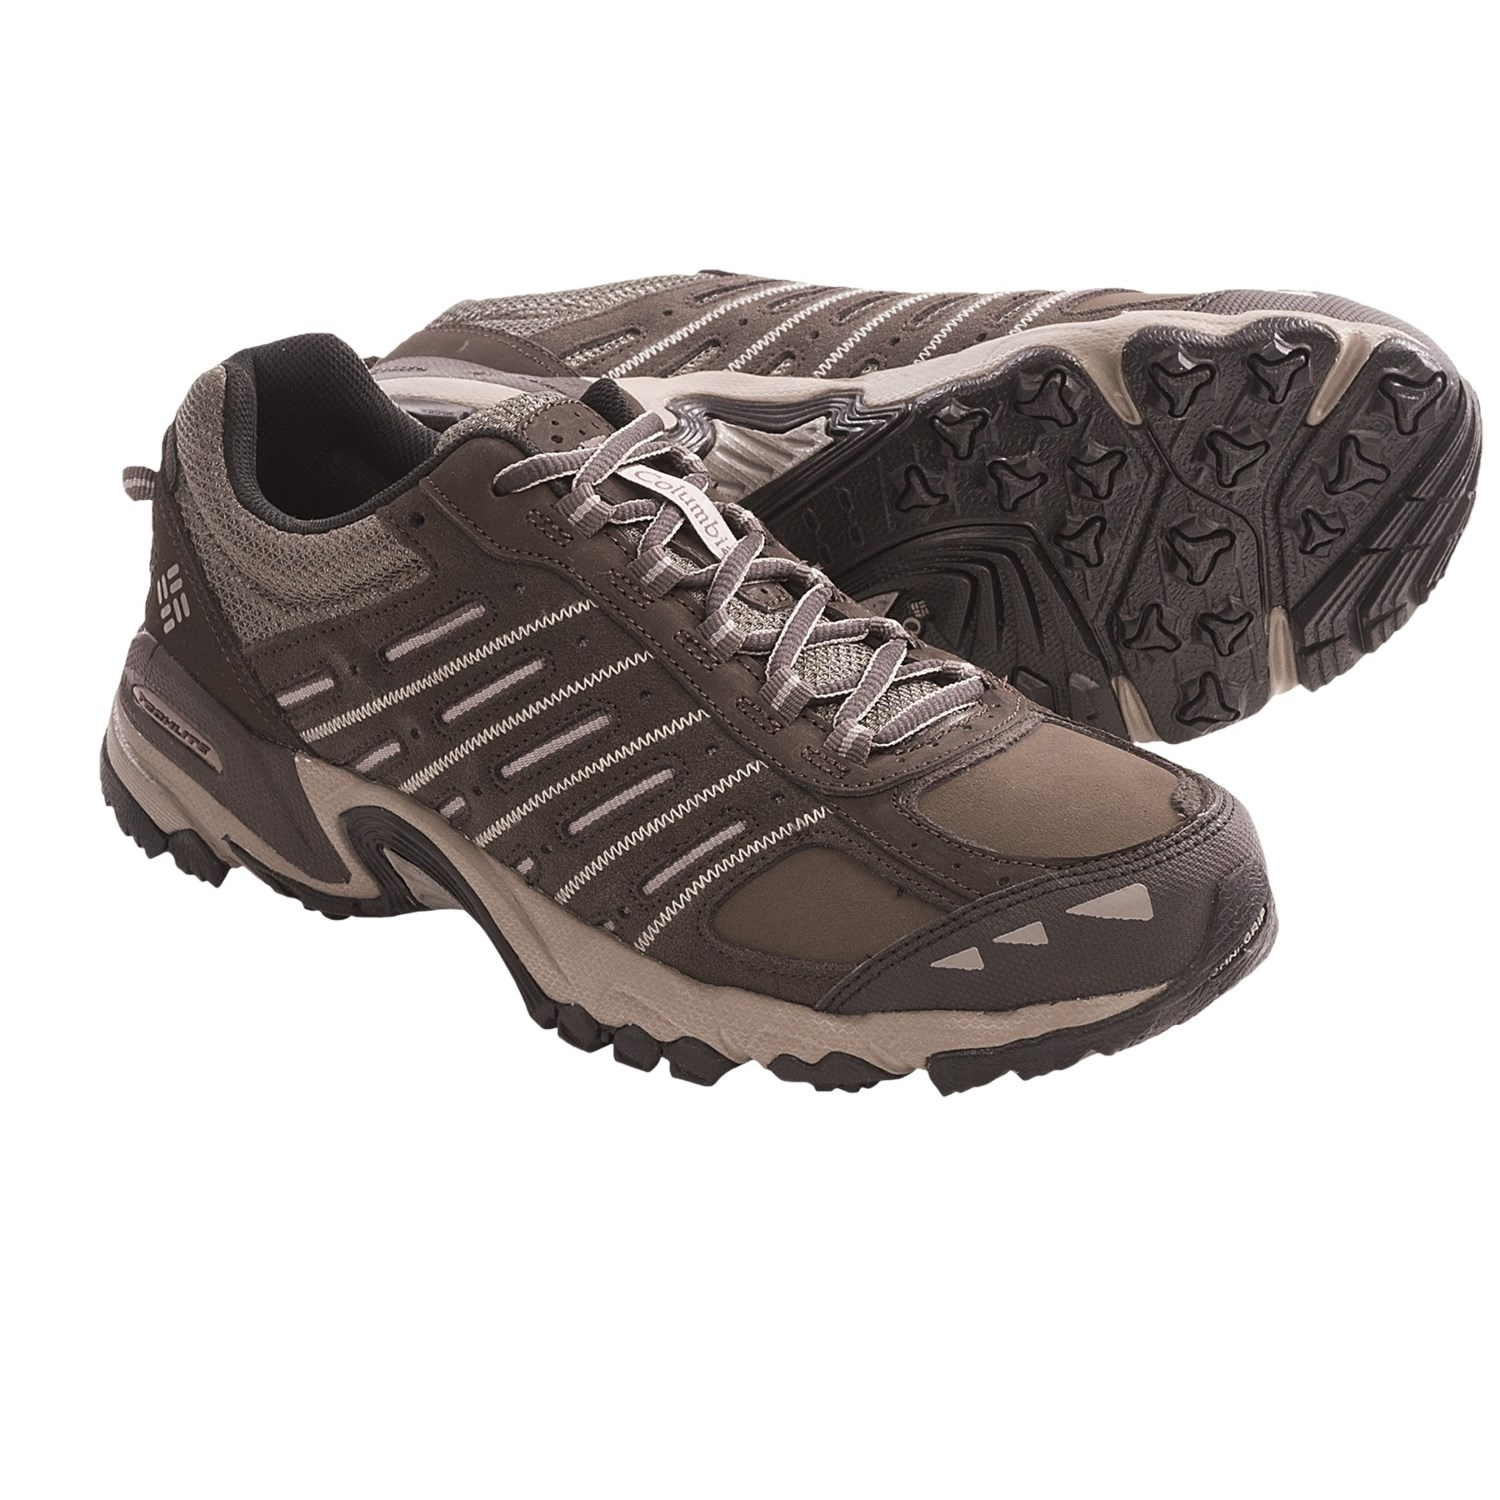 Columbia Sportswear Northbend Trail Shoes - Leather (For Men) in